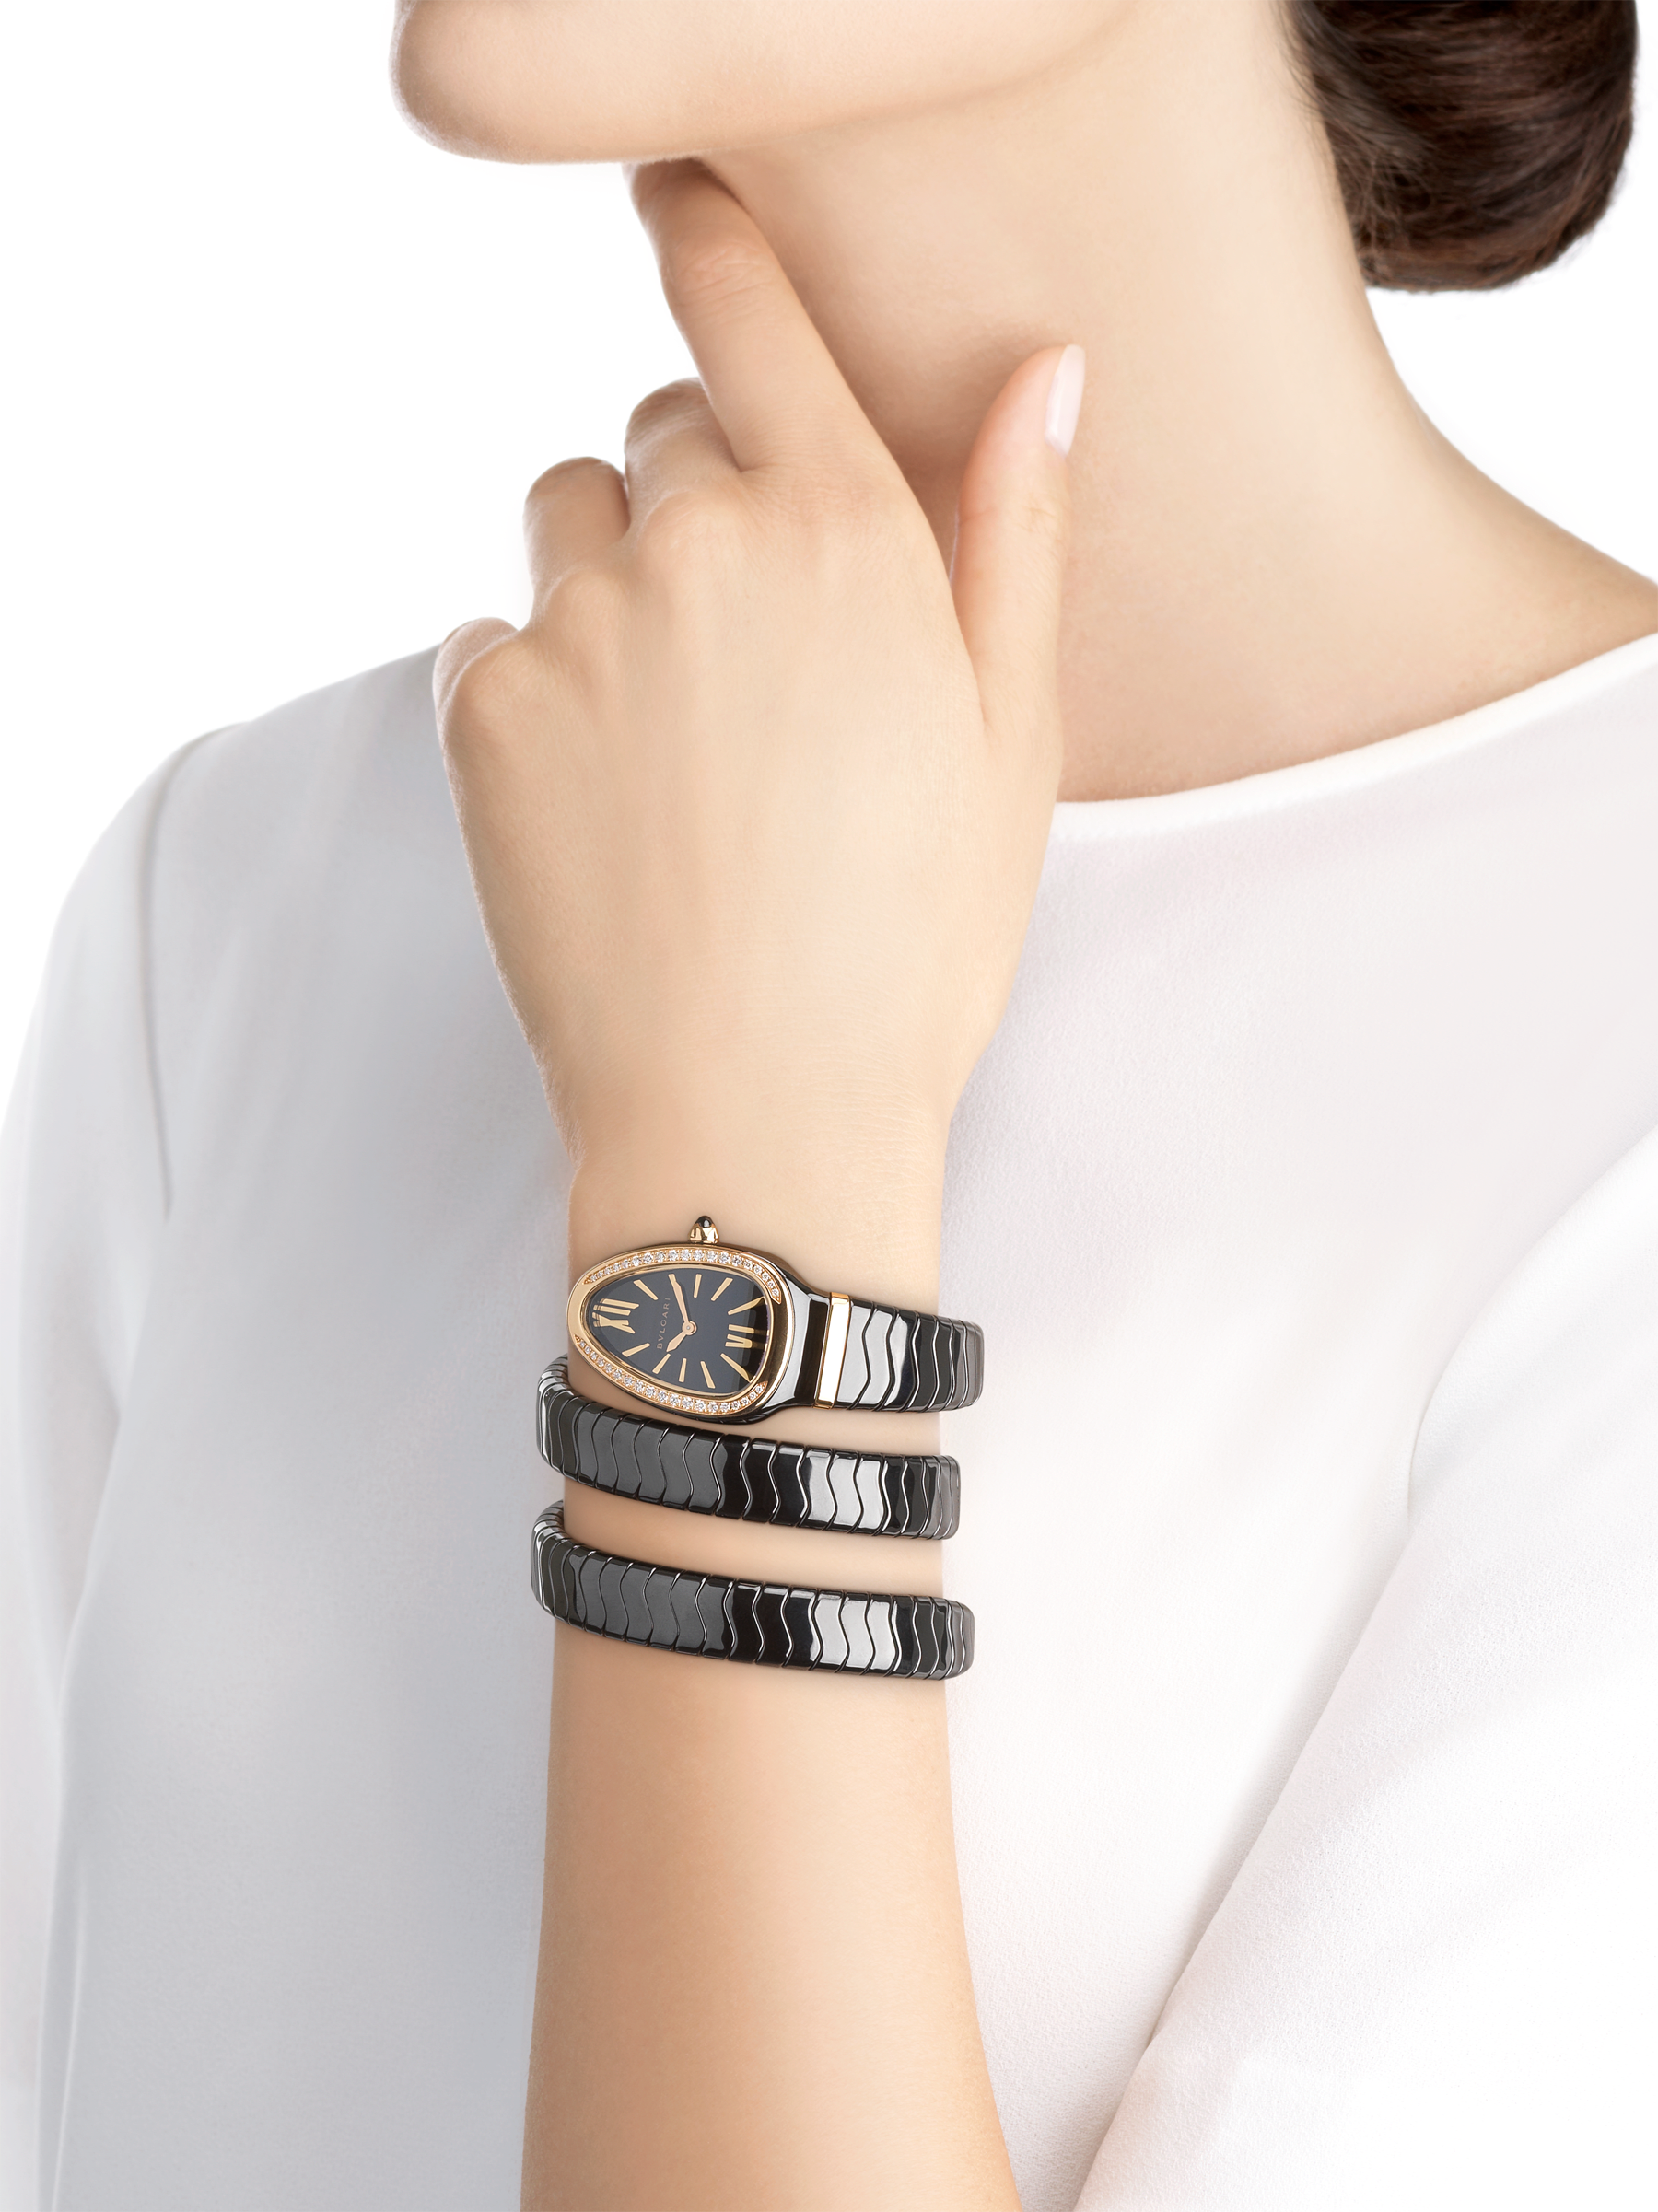 Serpenti Spiga watch with black ceramic case, 18 kt rose gold bezel set with diamonds, black lacquered polished dial and double spiral bracelet in black ceramic and 18 kt rose gold elements. 102885 image 2